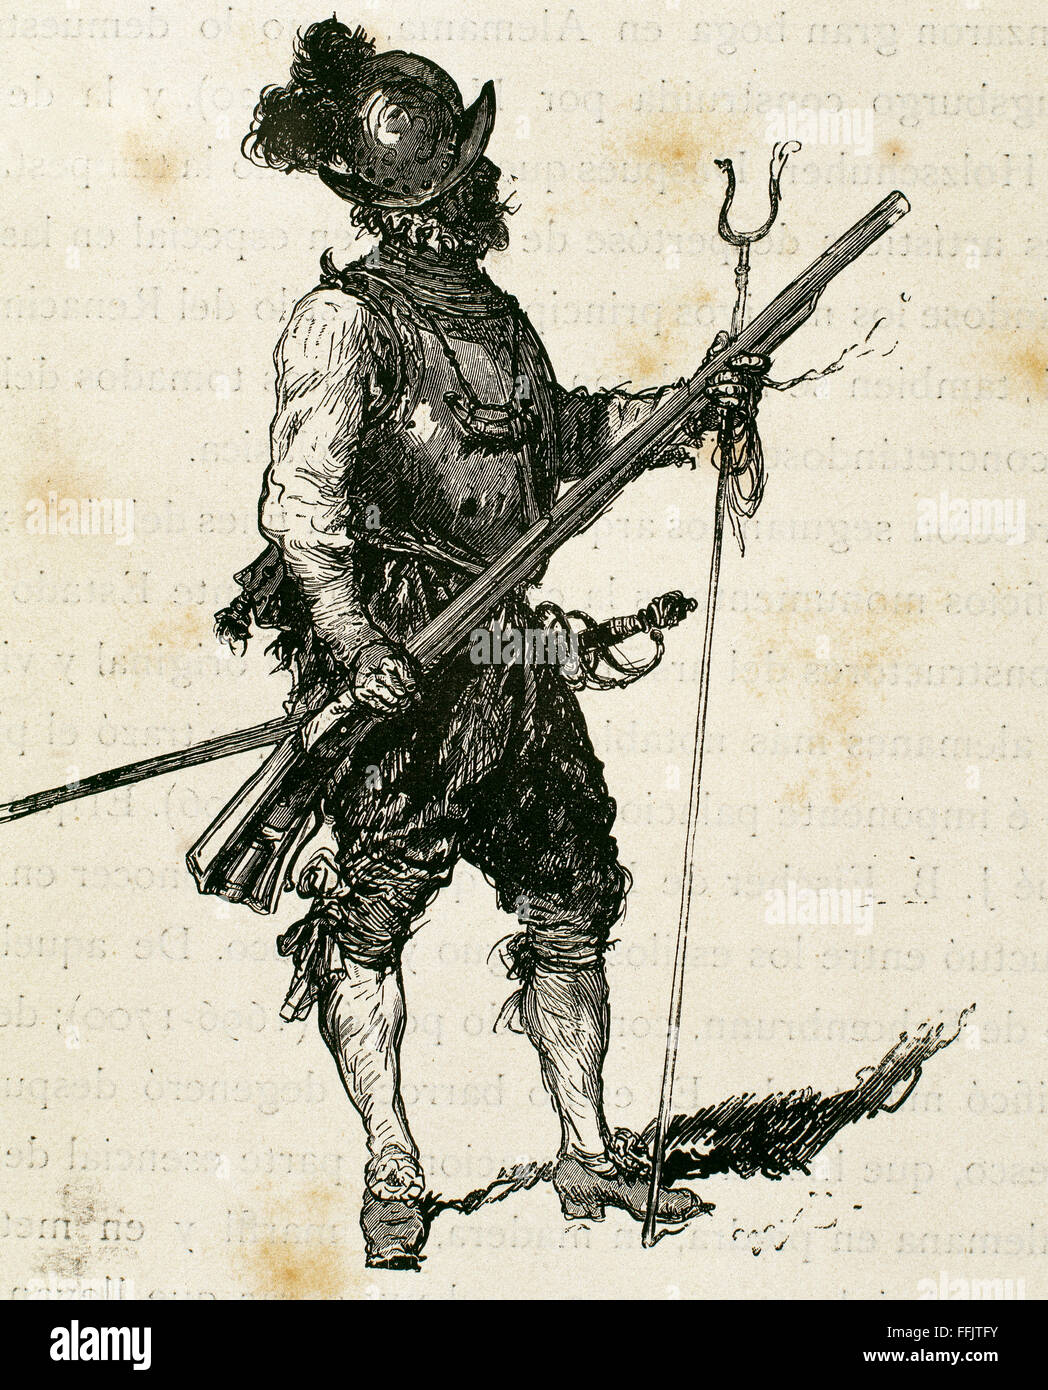 Arquebusier. Soldier armed with an arquebus. Infantry Regiment. 16th century. Engraving, 19th century. - Stock Image